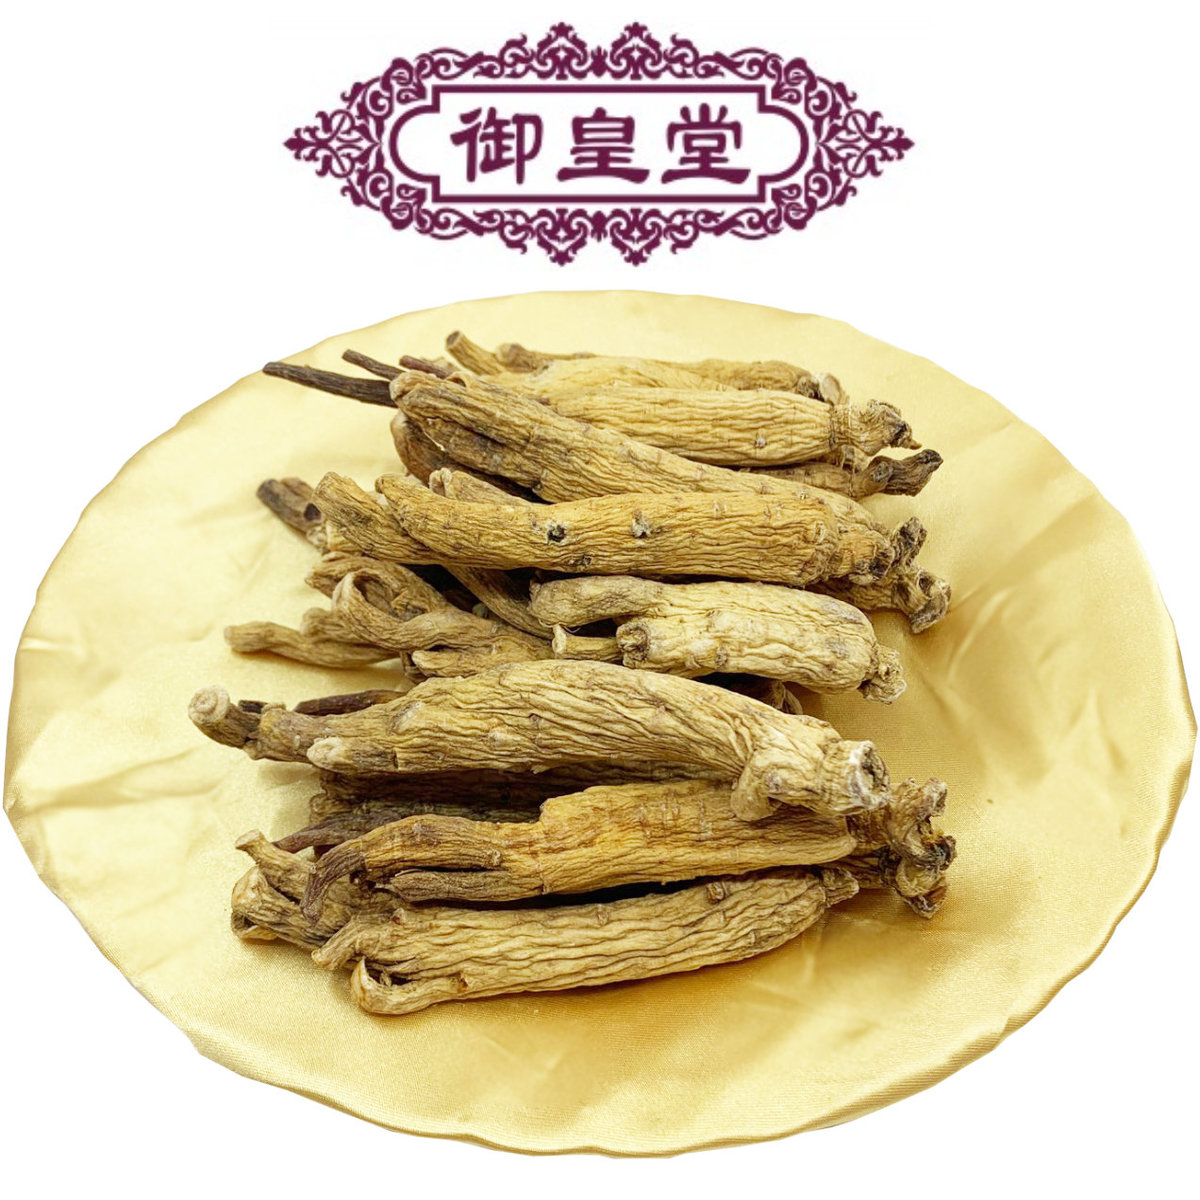 太極高地參 (Ginseng) around 151g (around 5-6 pieces)